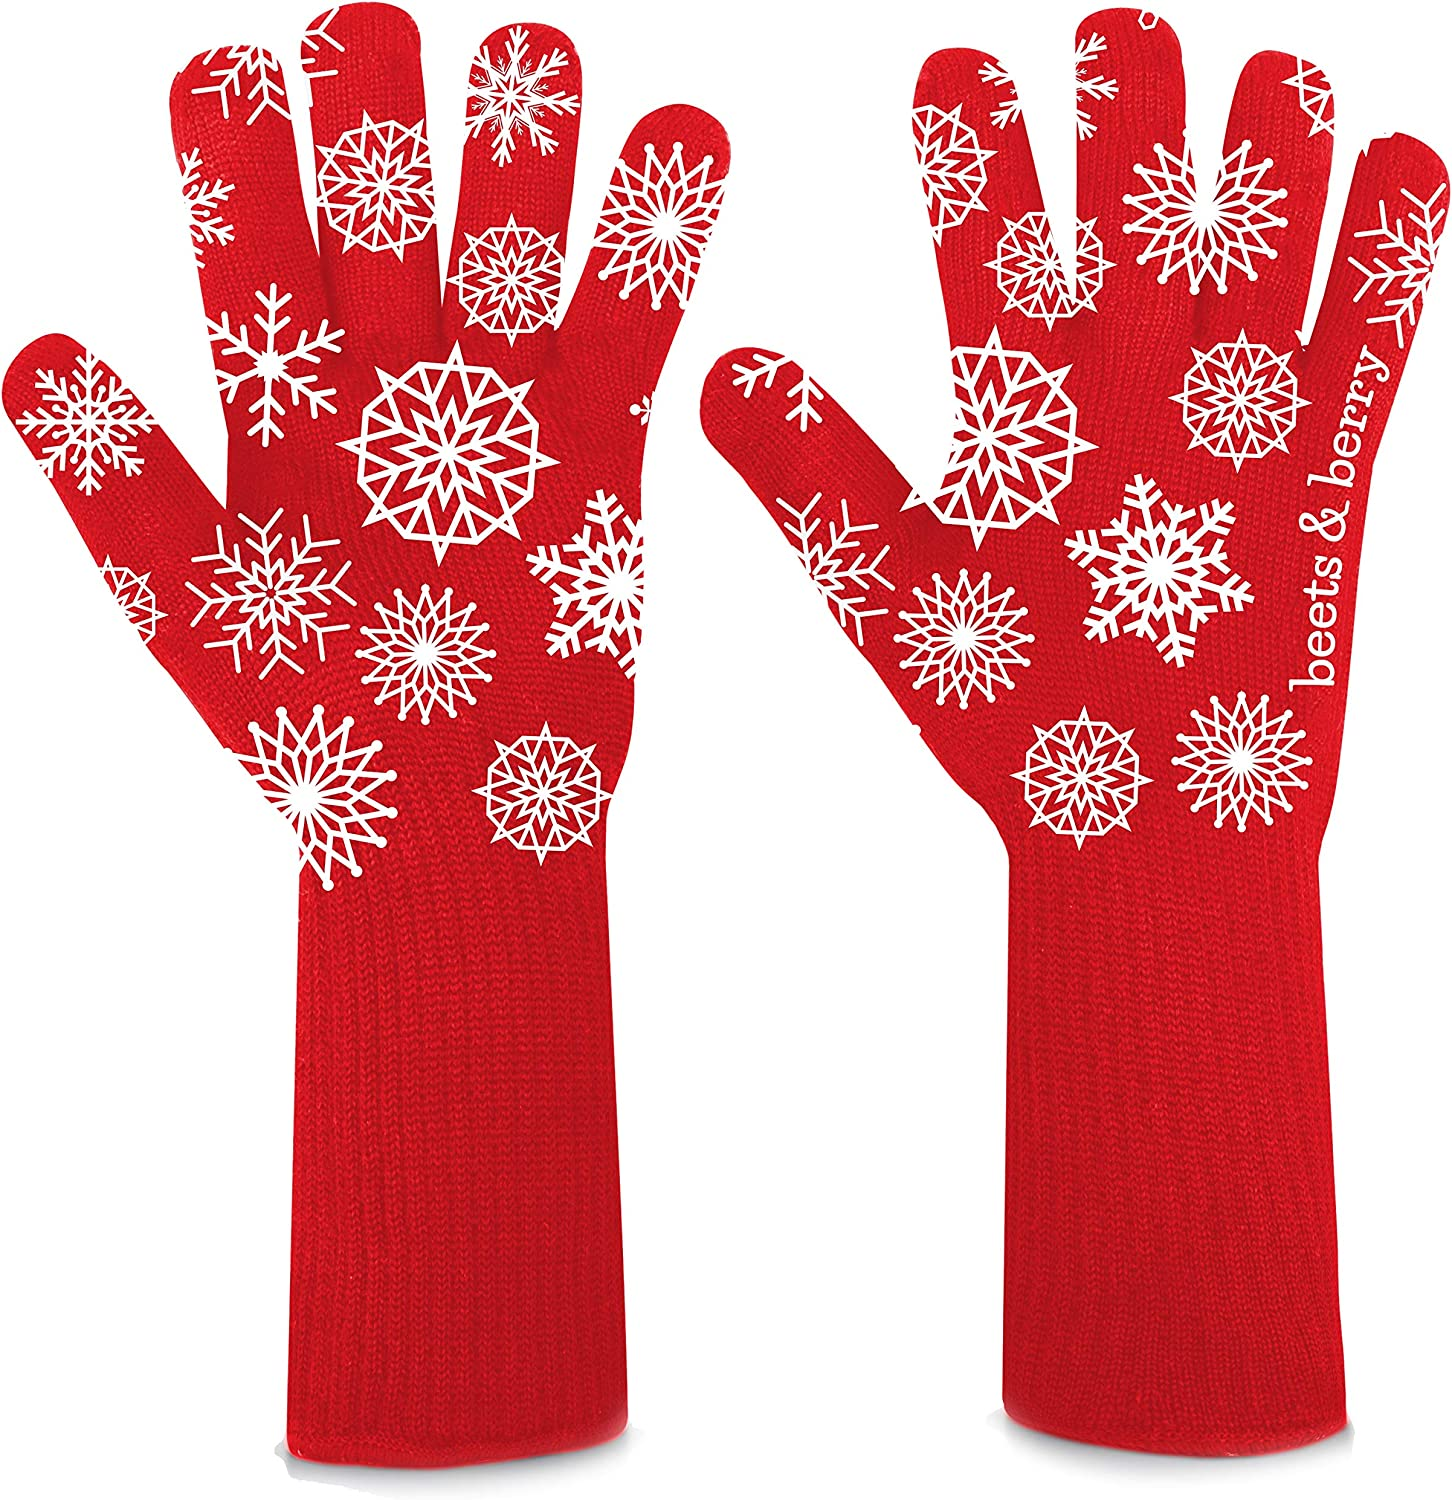 Beets & Berry Oven Gloves Heat Resistant Holiday Oven Mitts for Women Xmas Gifts | 1 Pair Cut Resistant Cooking Gloves with Extra Long Sleeves & Silicone Non-Slip (Holiday Design)